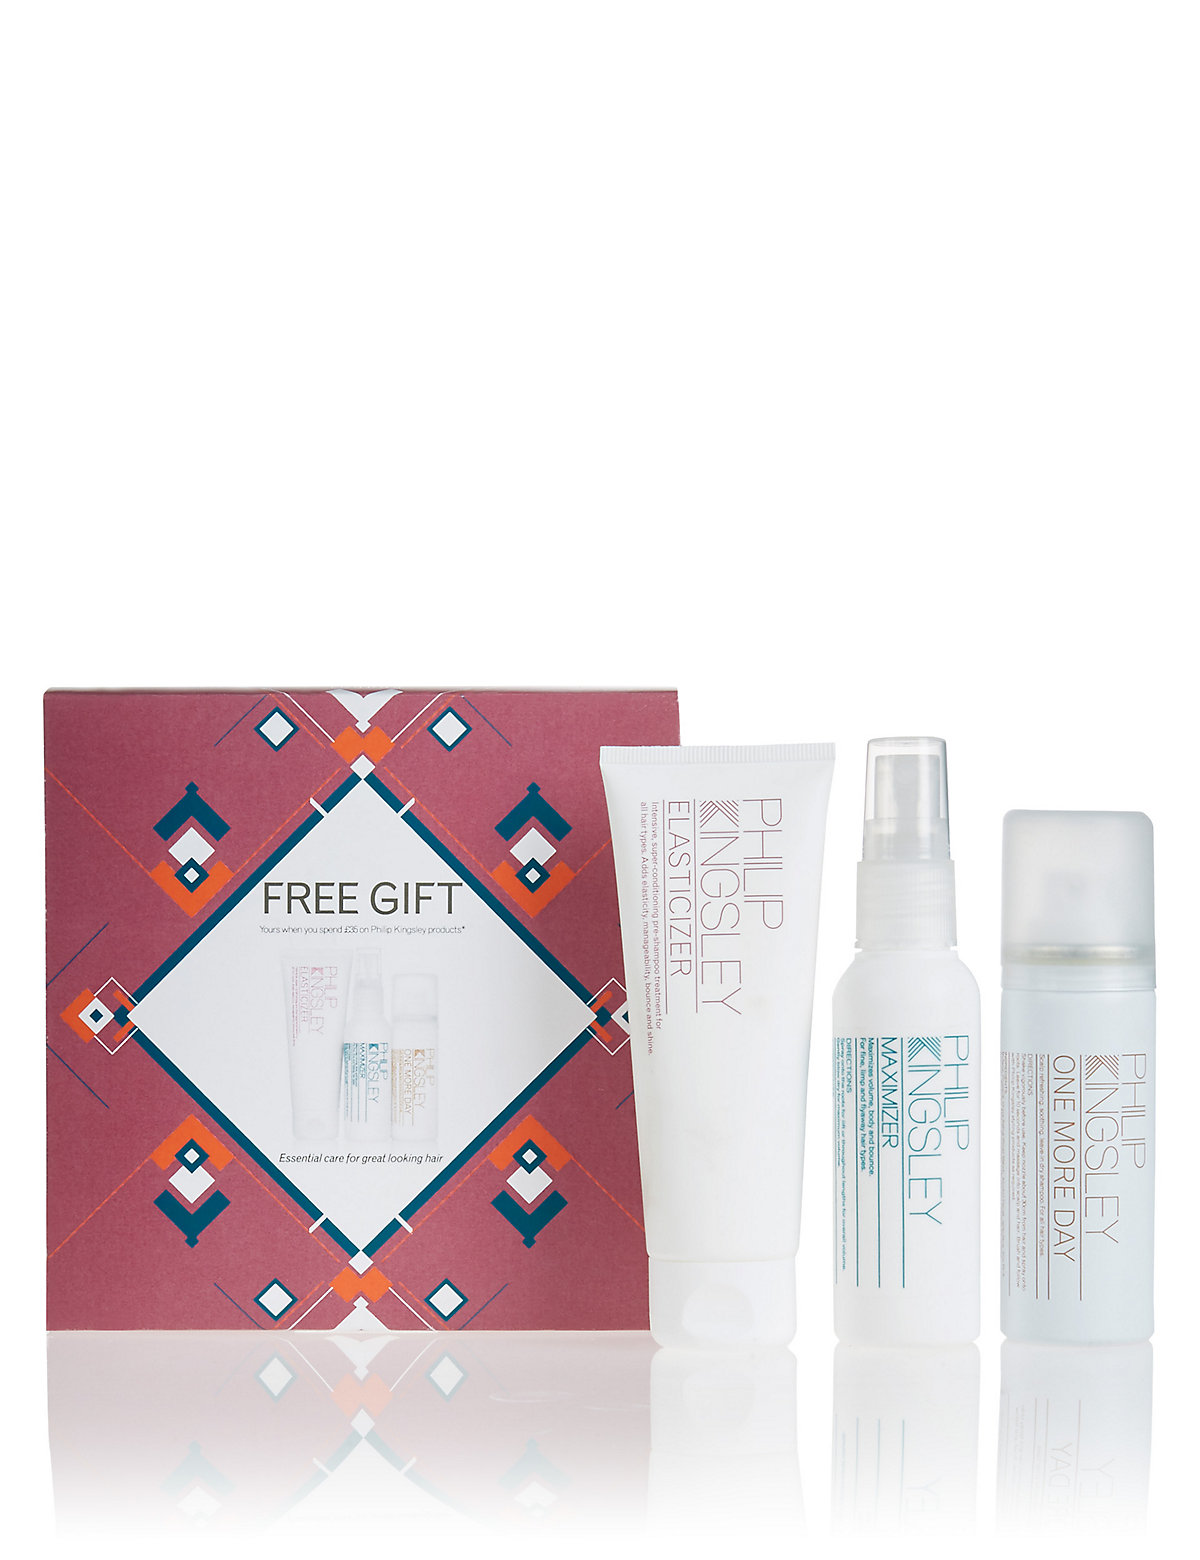 Philip Kingsley Free Gift Essential Care Set for Great Looking Hair